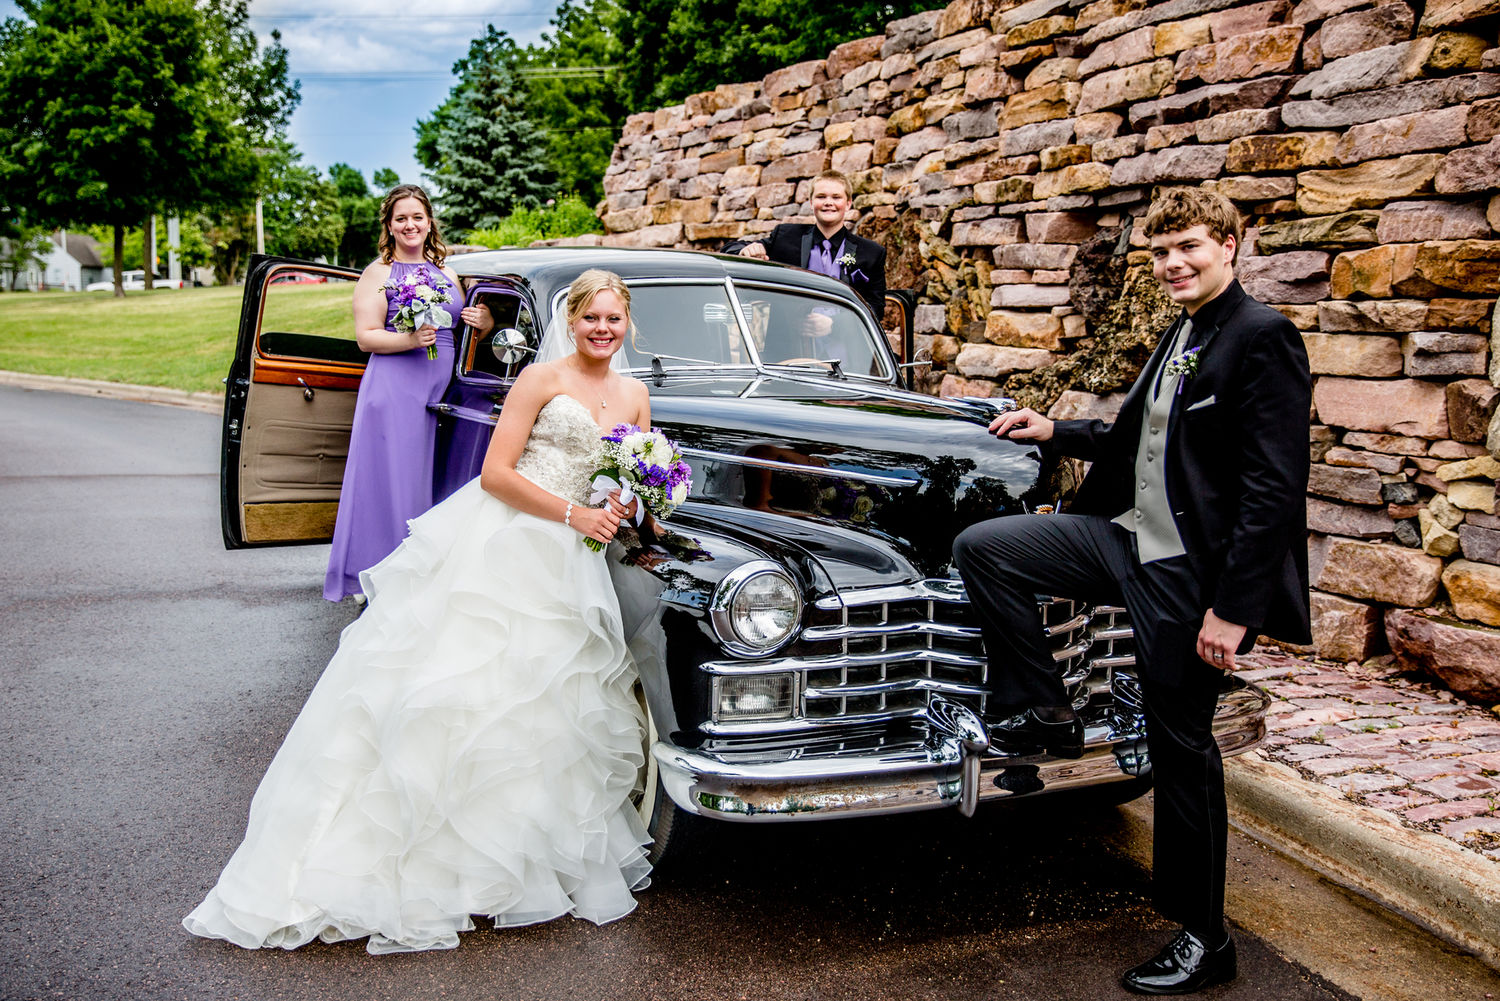 Sioux Falls Wedding Photographers, The Studio I DO